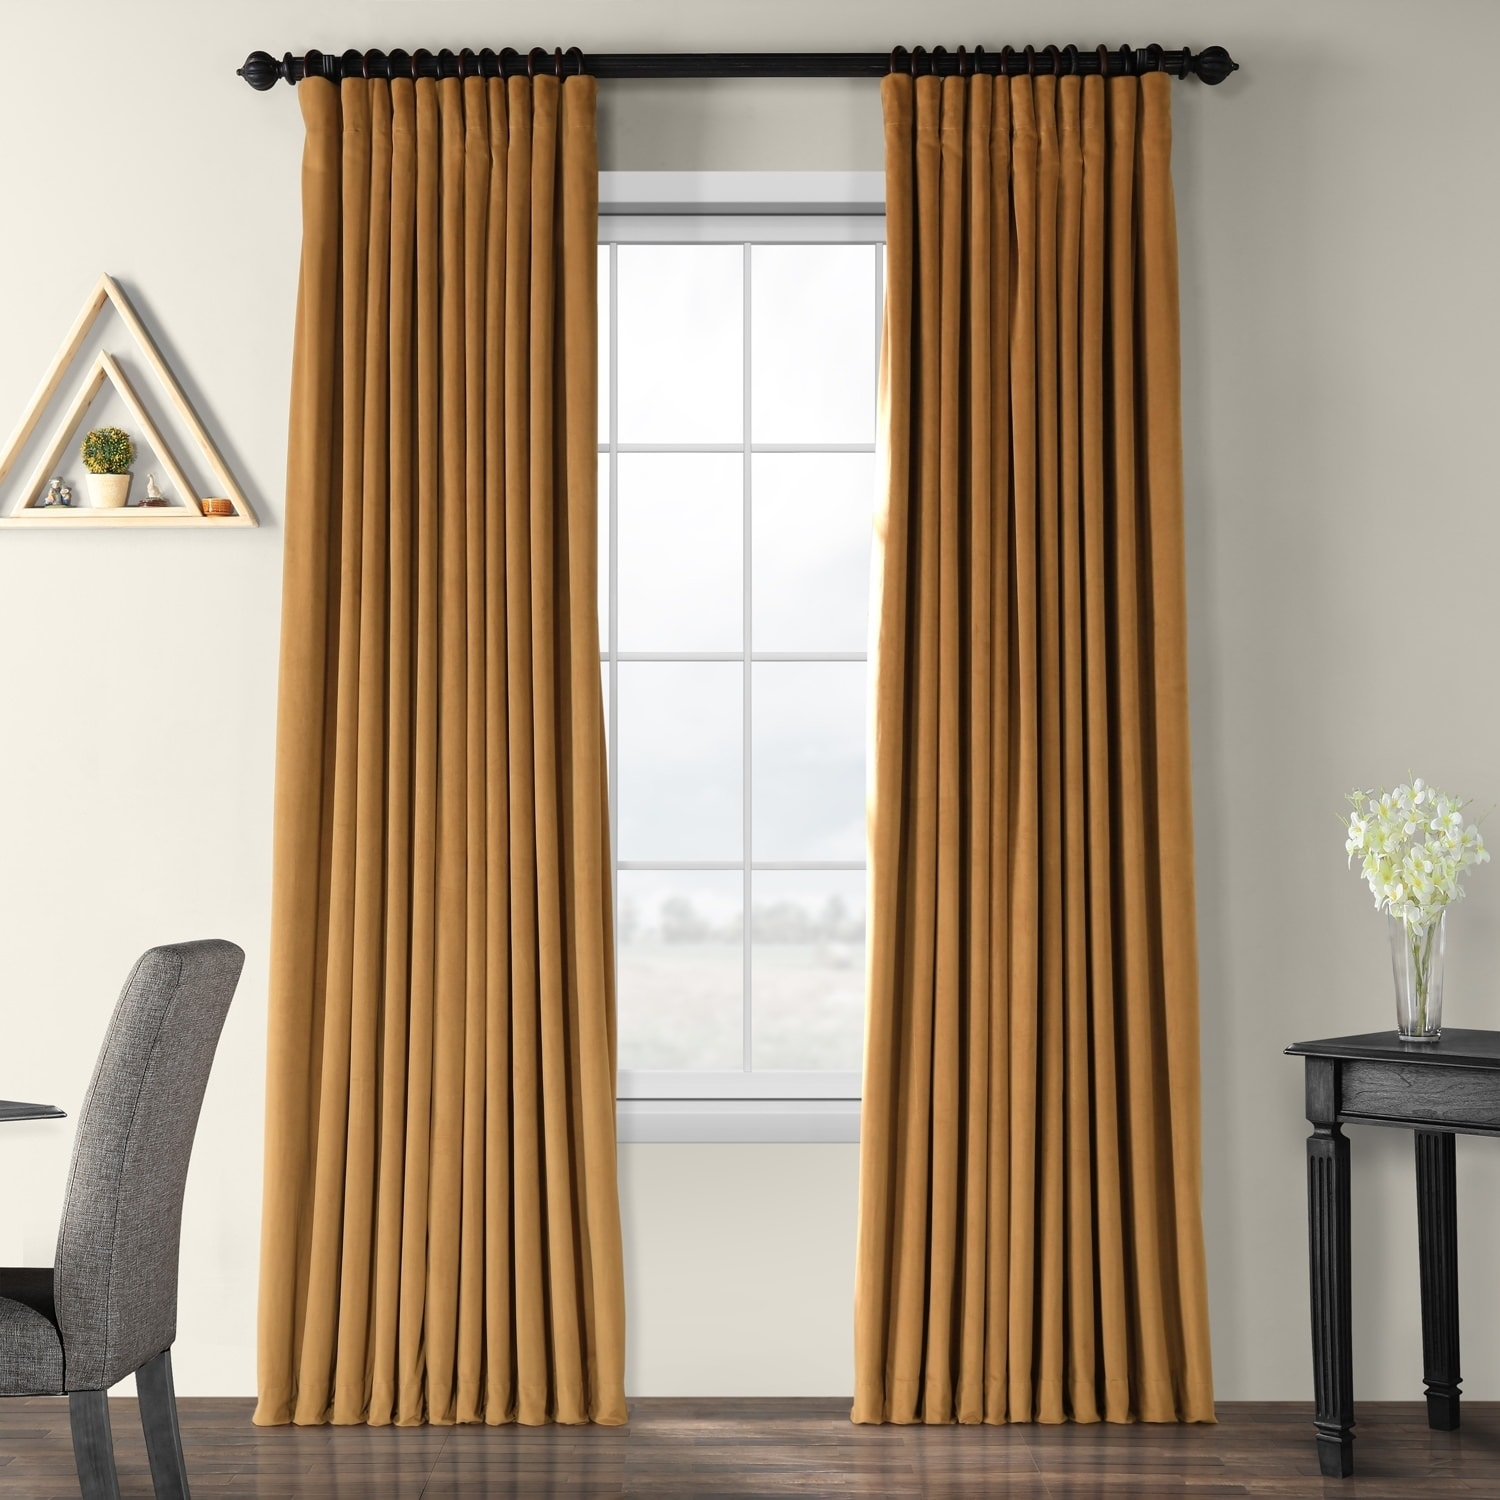 Buy Formal Curtains Drapes Online At Overstock Our Best